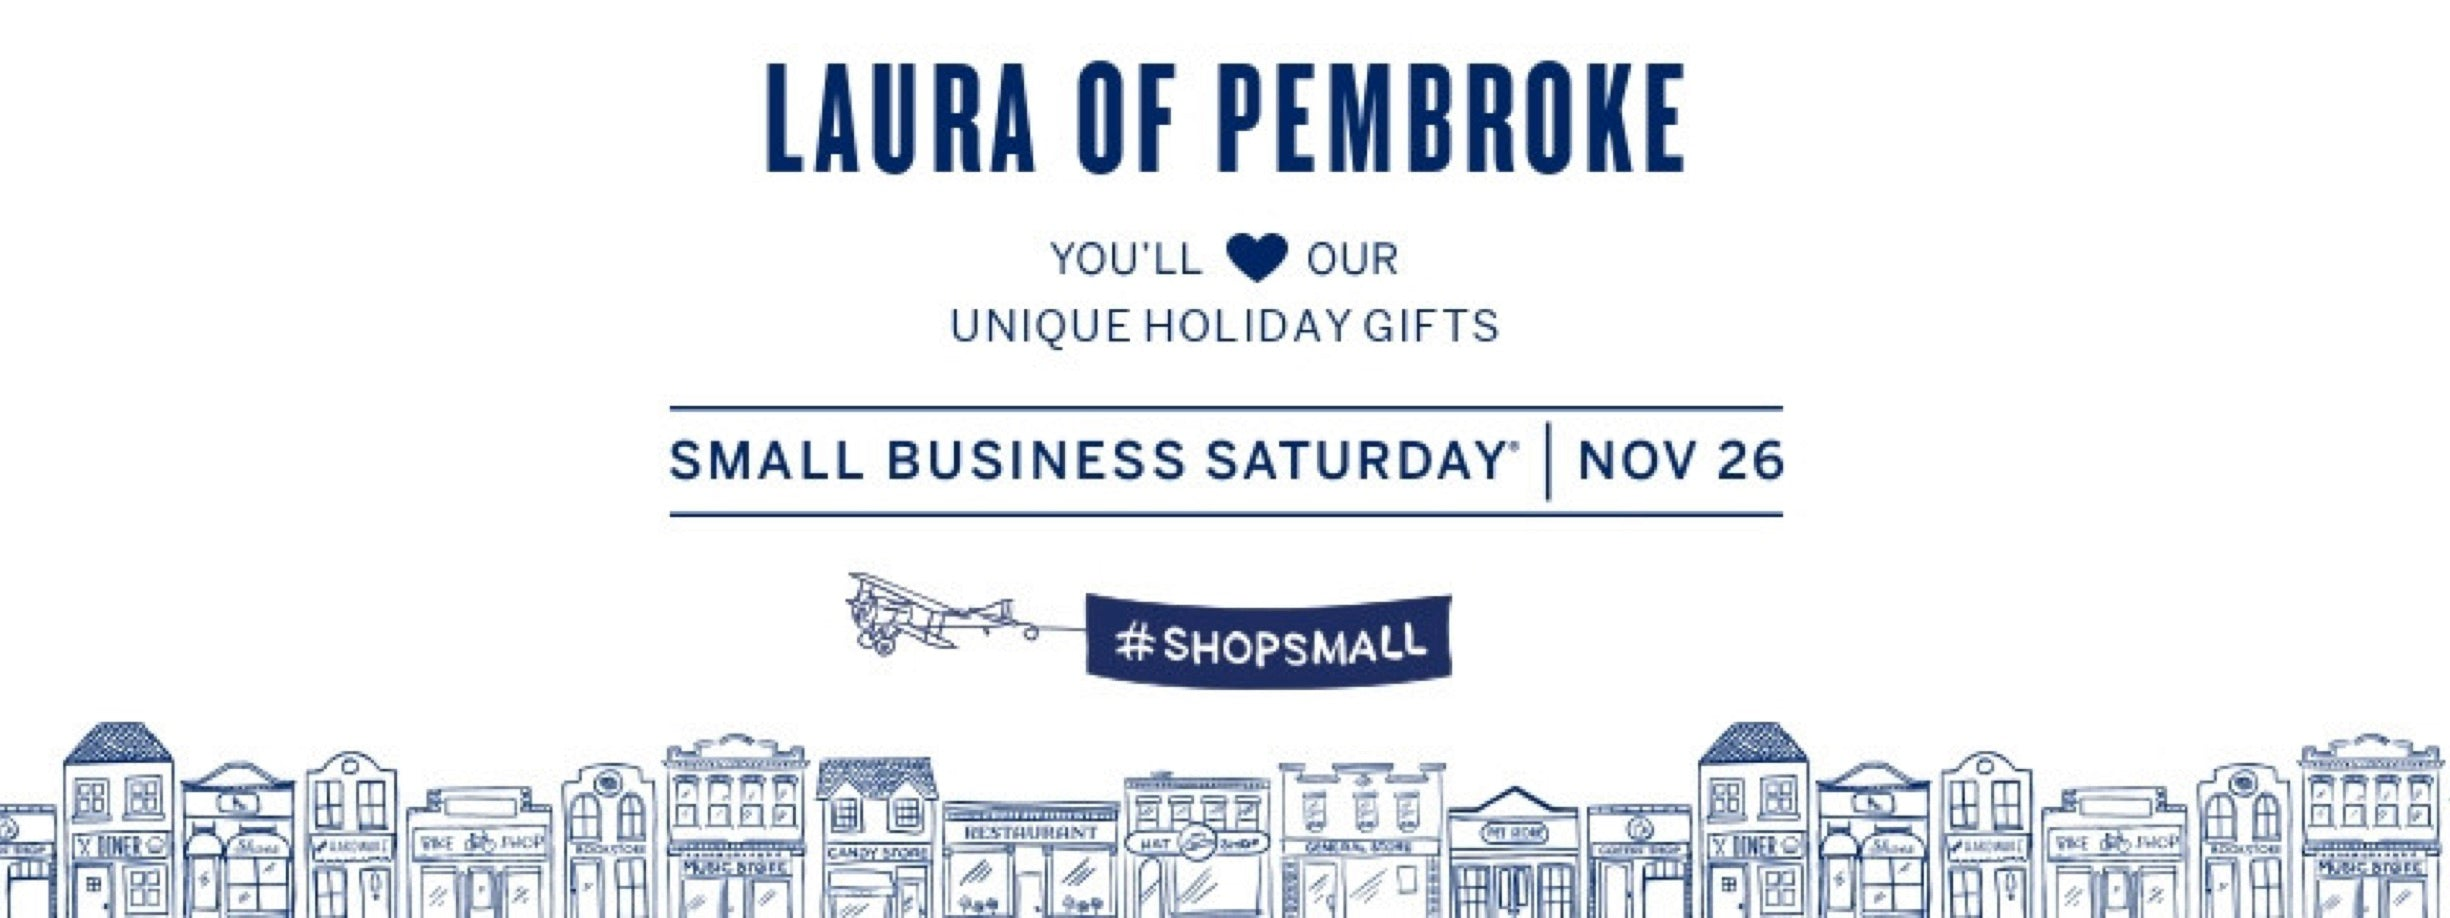 Laura of Pembroke November 2016 Events